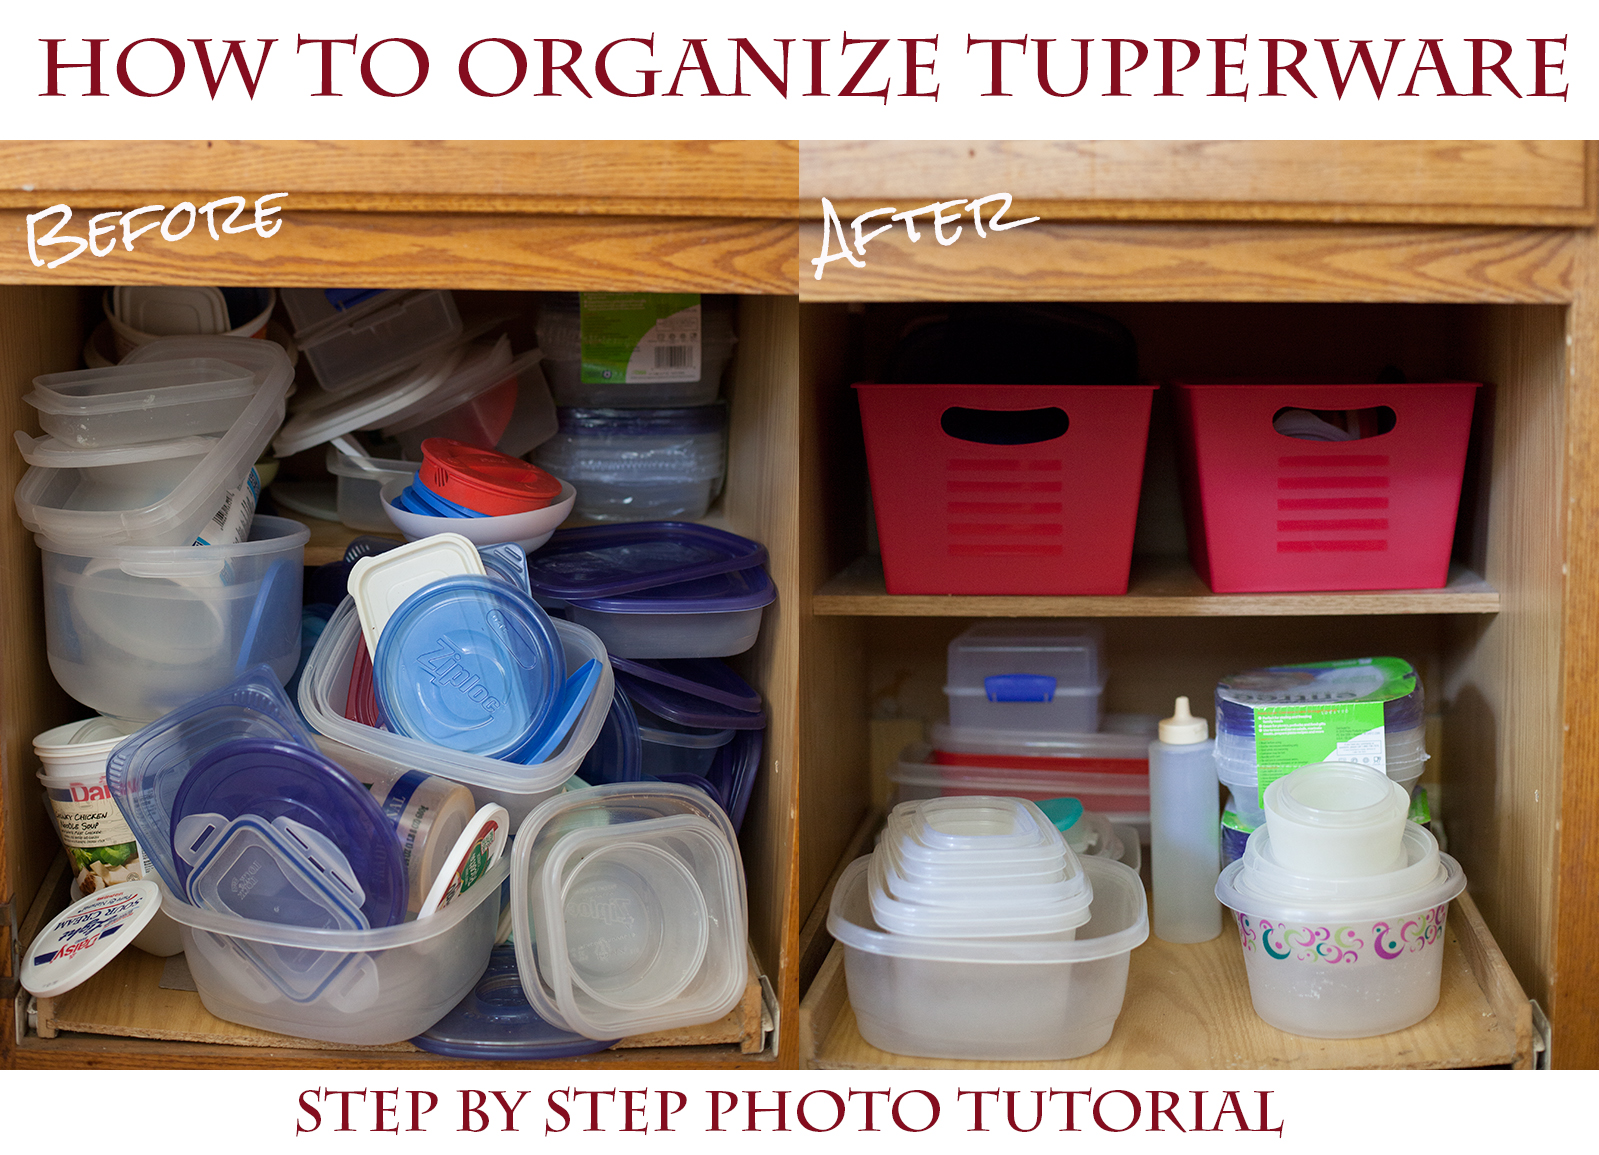 Exceptionnel These 5 Easy Steps Have Kept My Tupperware Cupboard Organized, Even When My  Husband Does